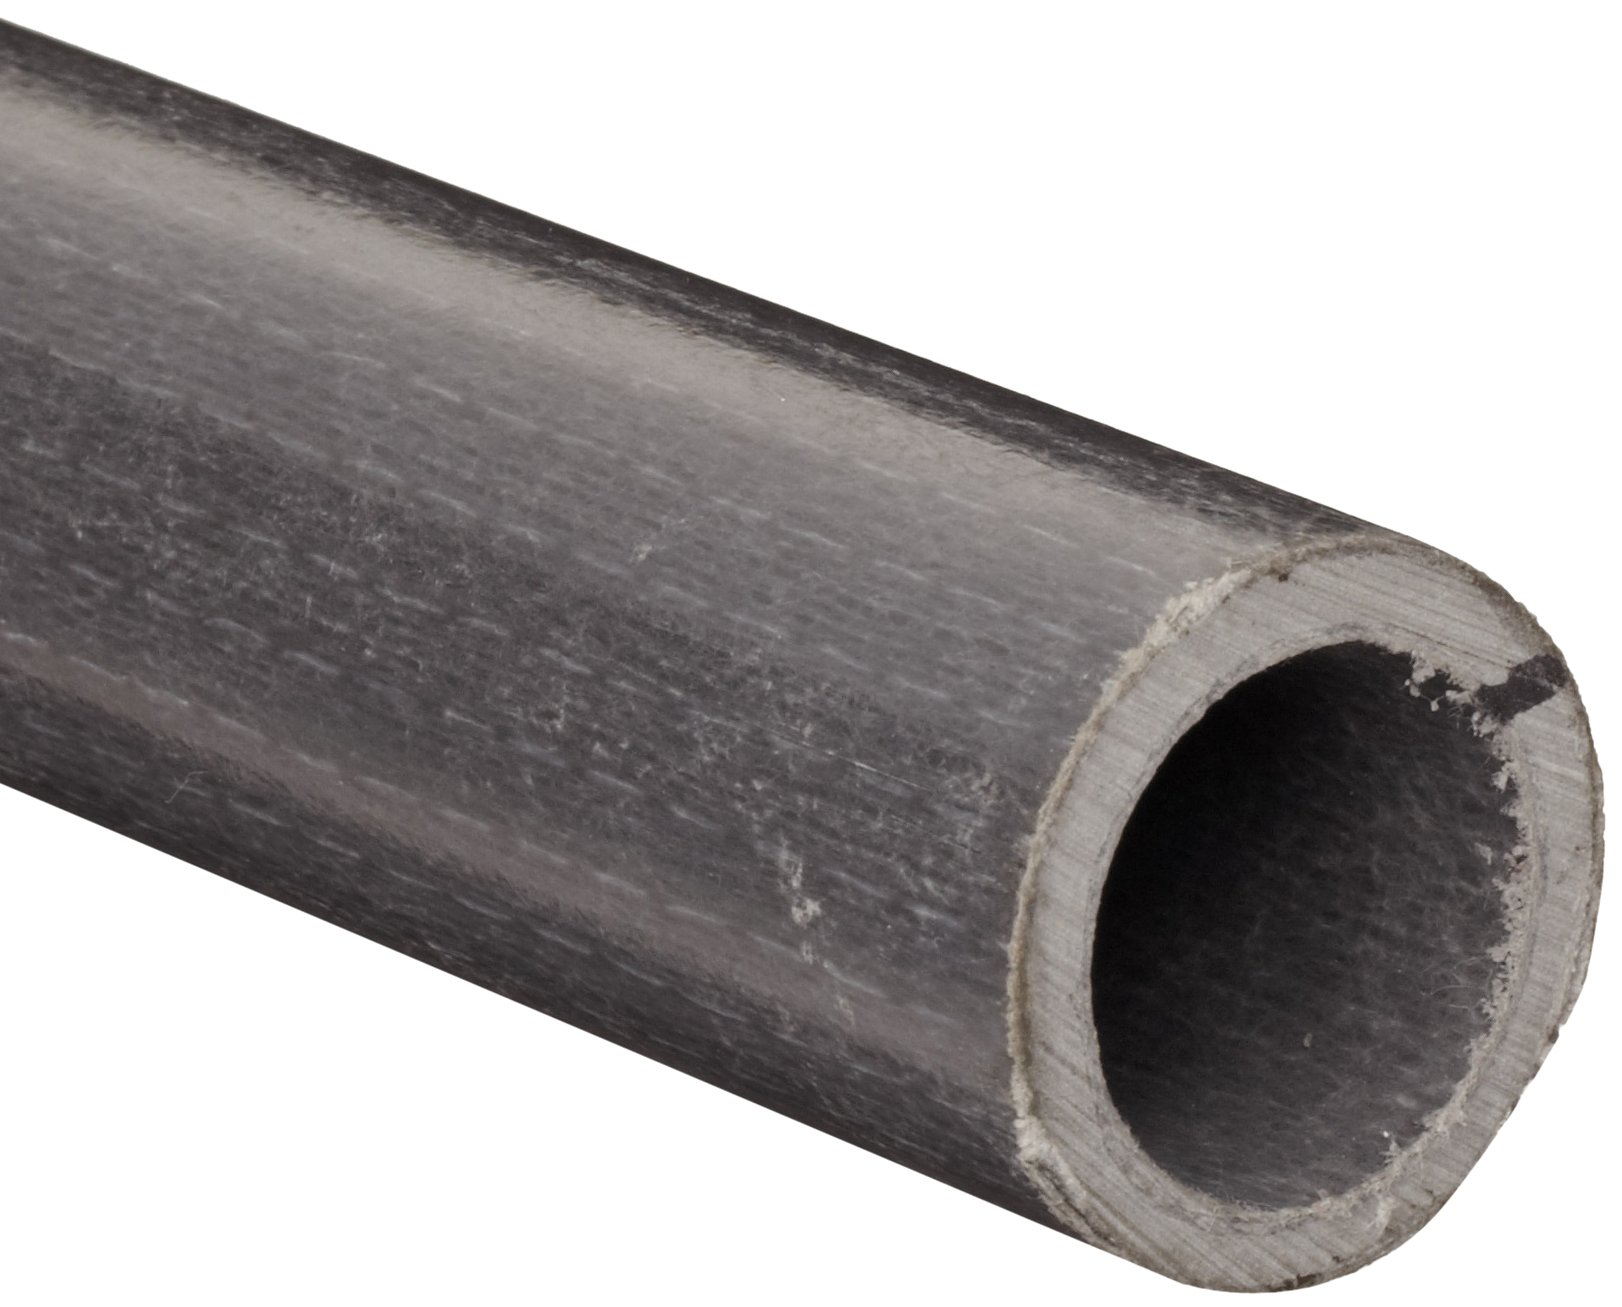 Black Fiberglass Hollow Round Bar, 1'' OD, 1/8'' Wall, 5' Length by Small Parts